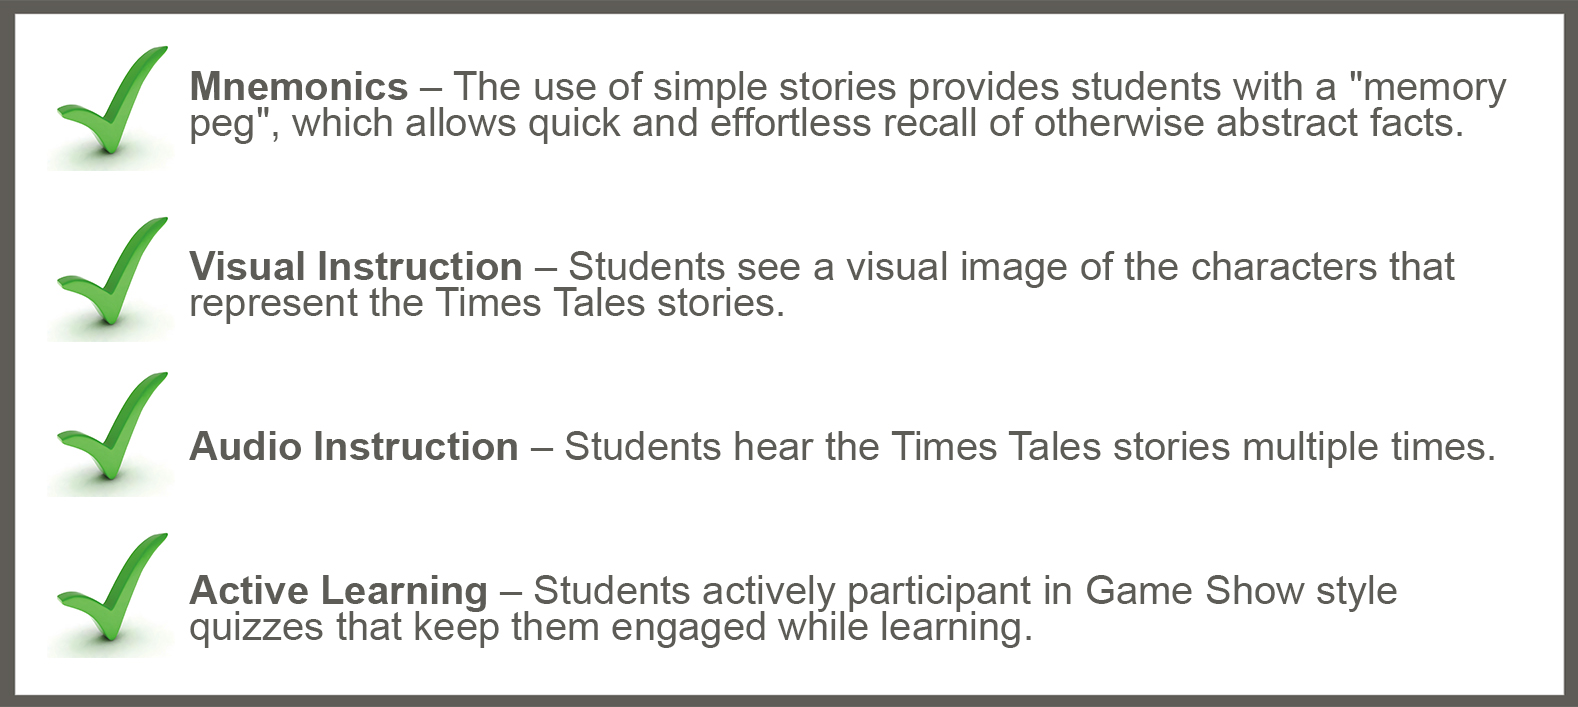 Times Tales uses mnemonics, visual instruction, audio instruction and active learning to help all learners memorize the times tables fast.